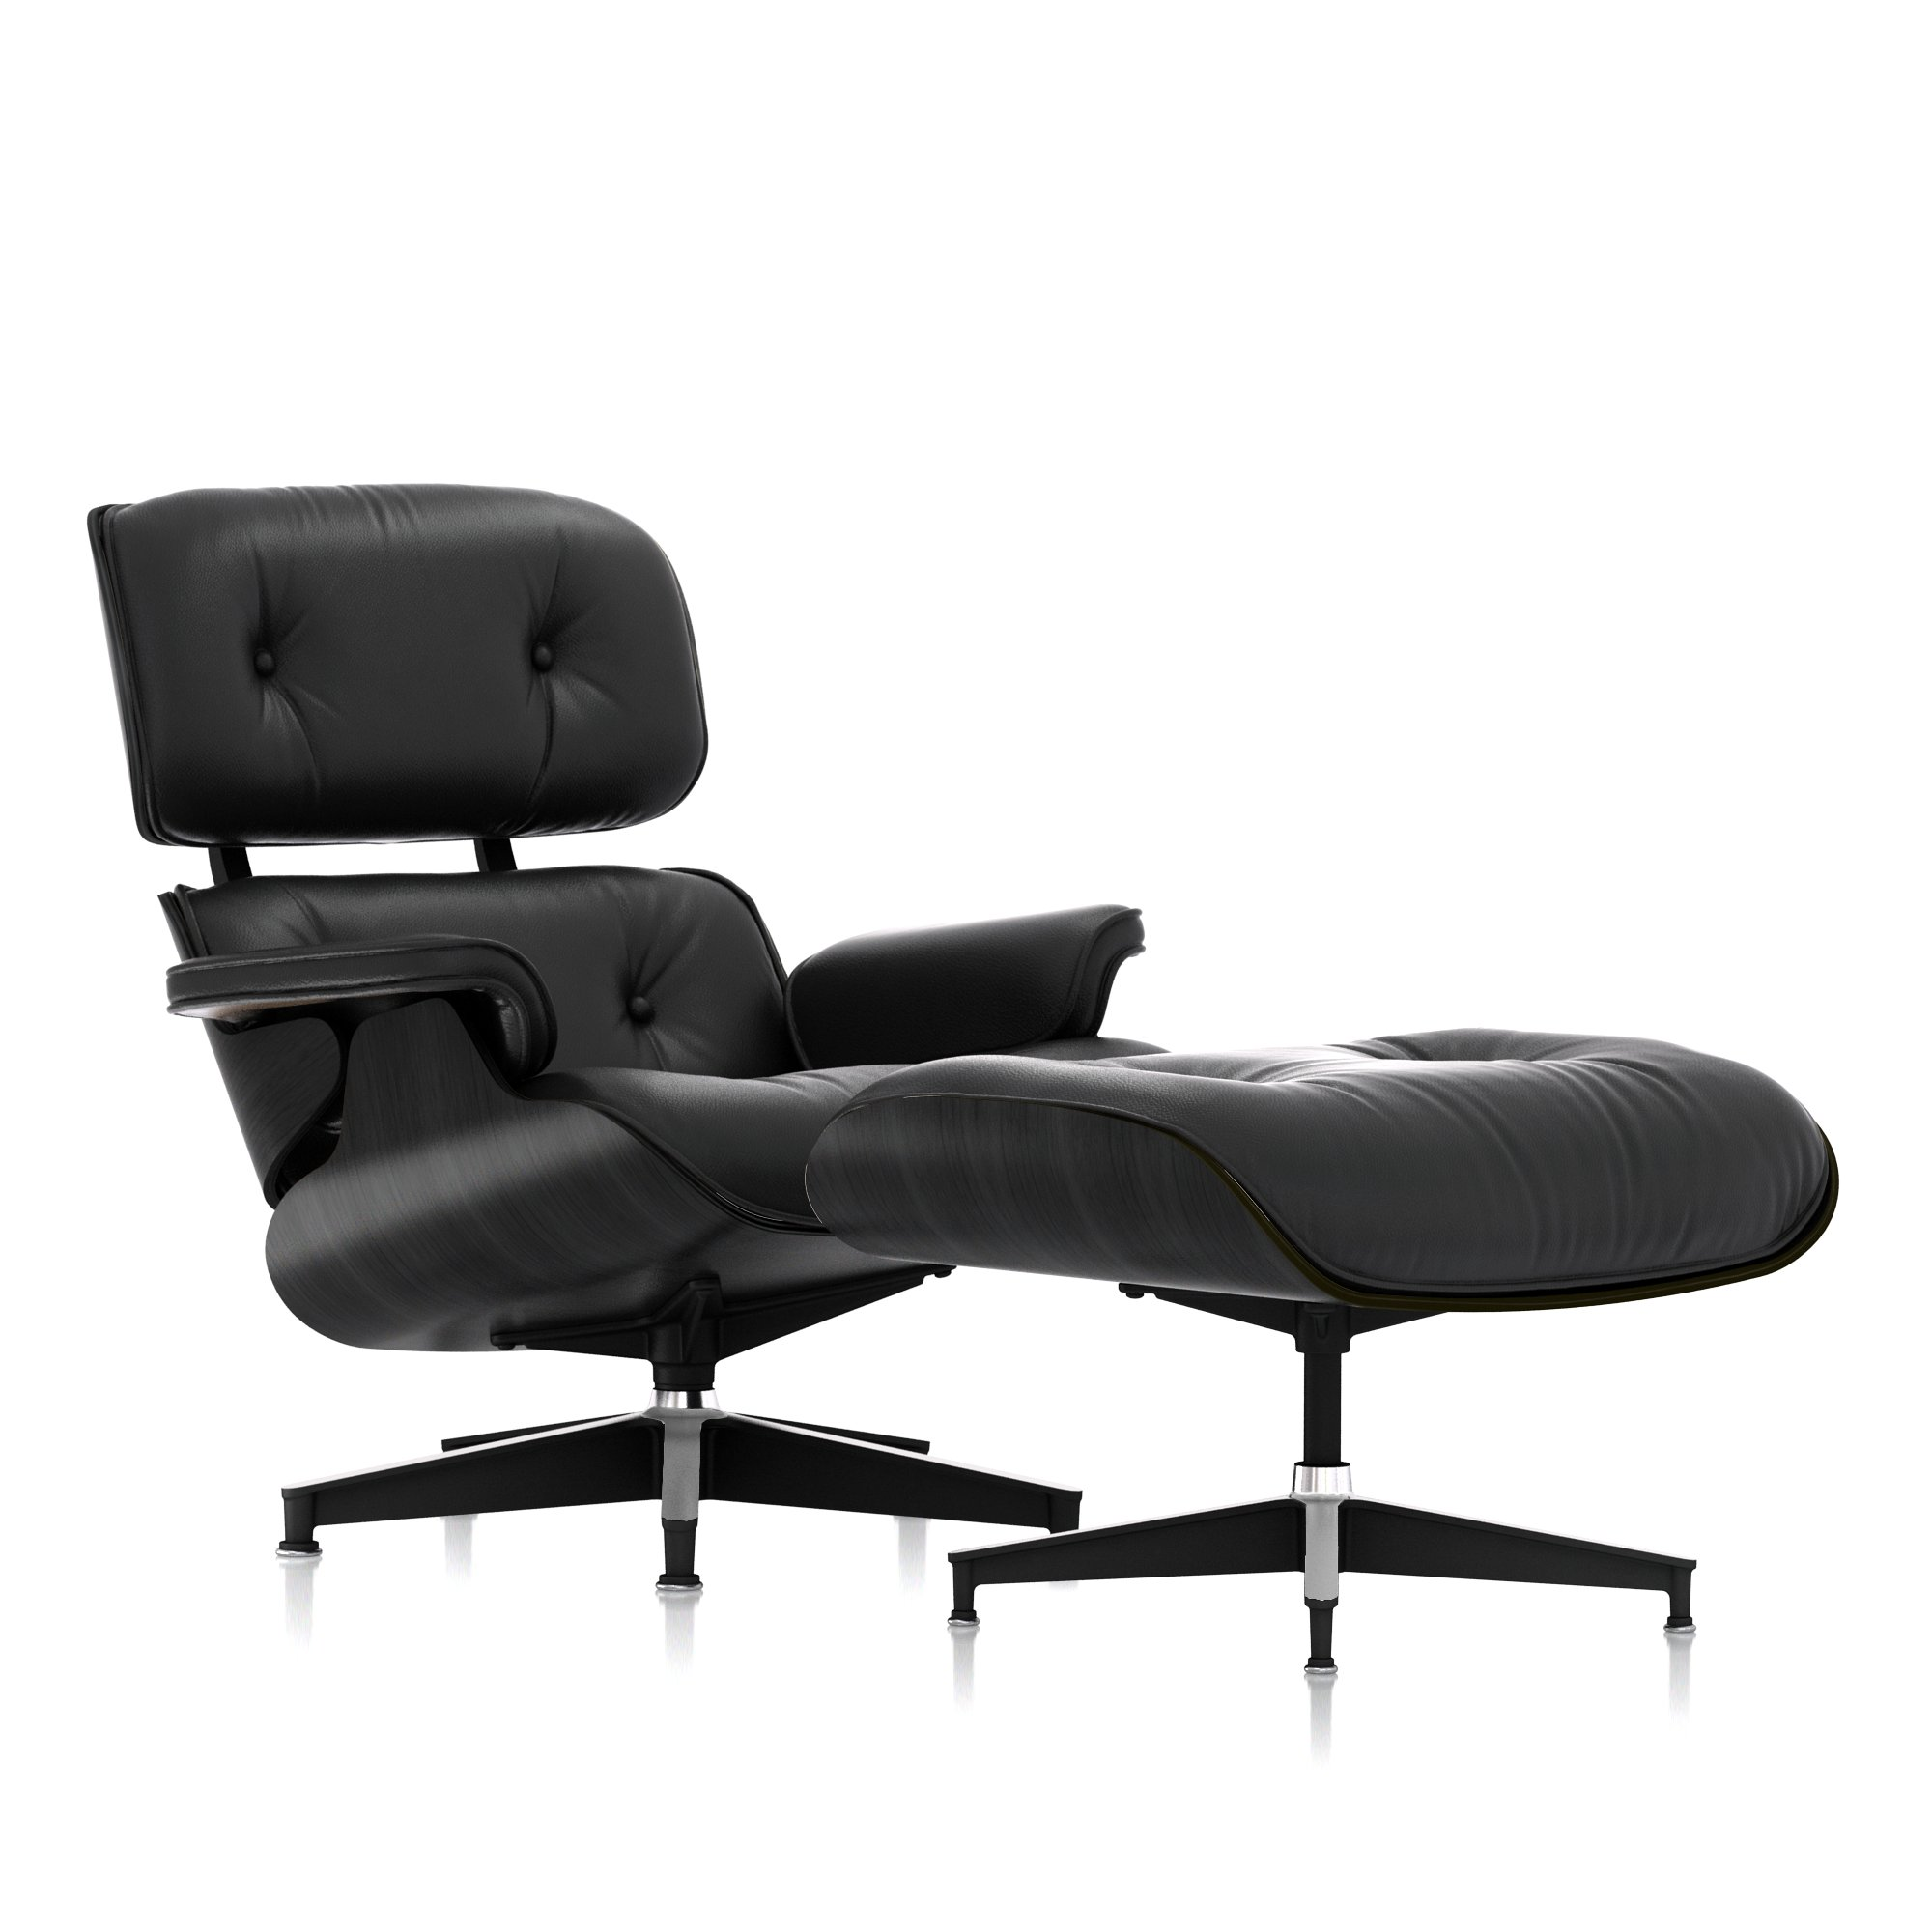 Eames Lounge Chair and Ottoman, Ebony